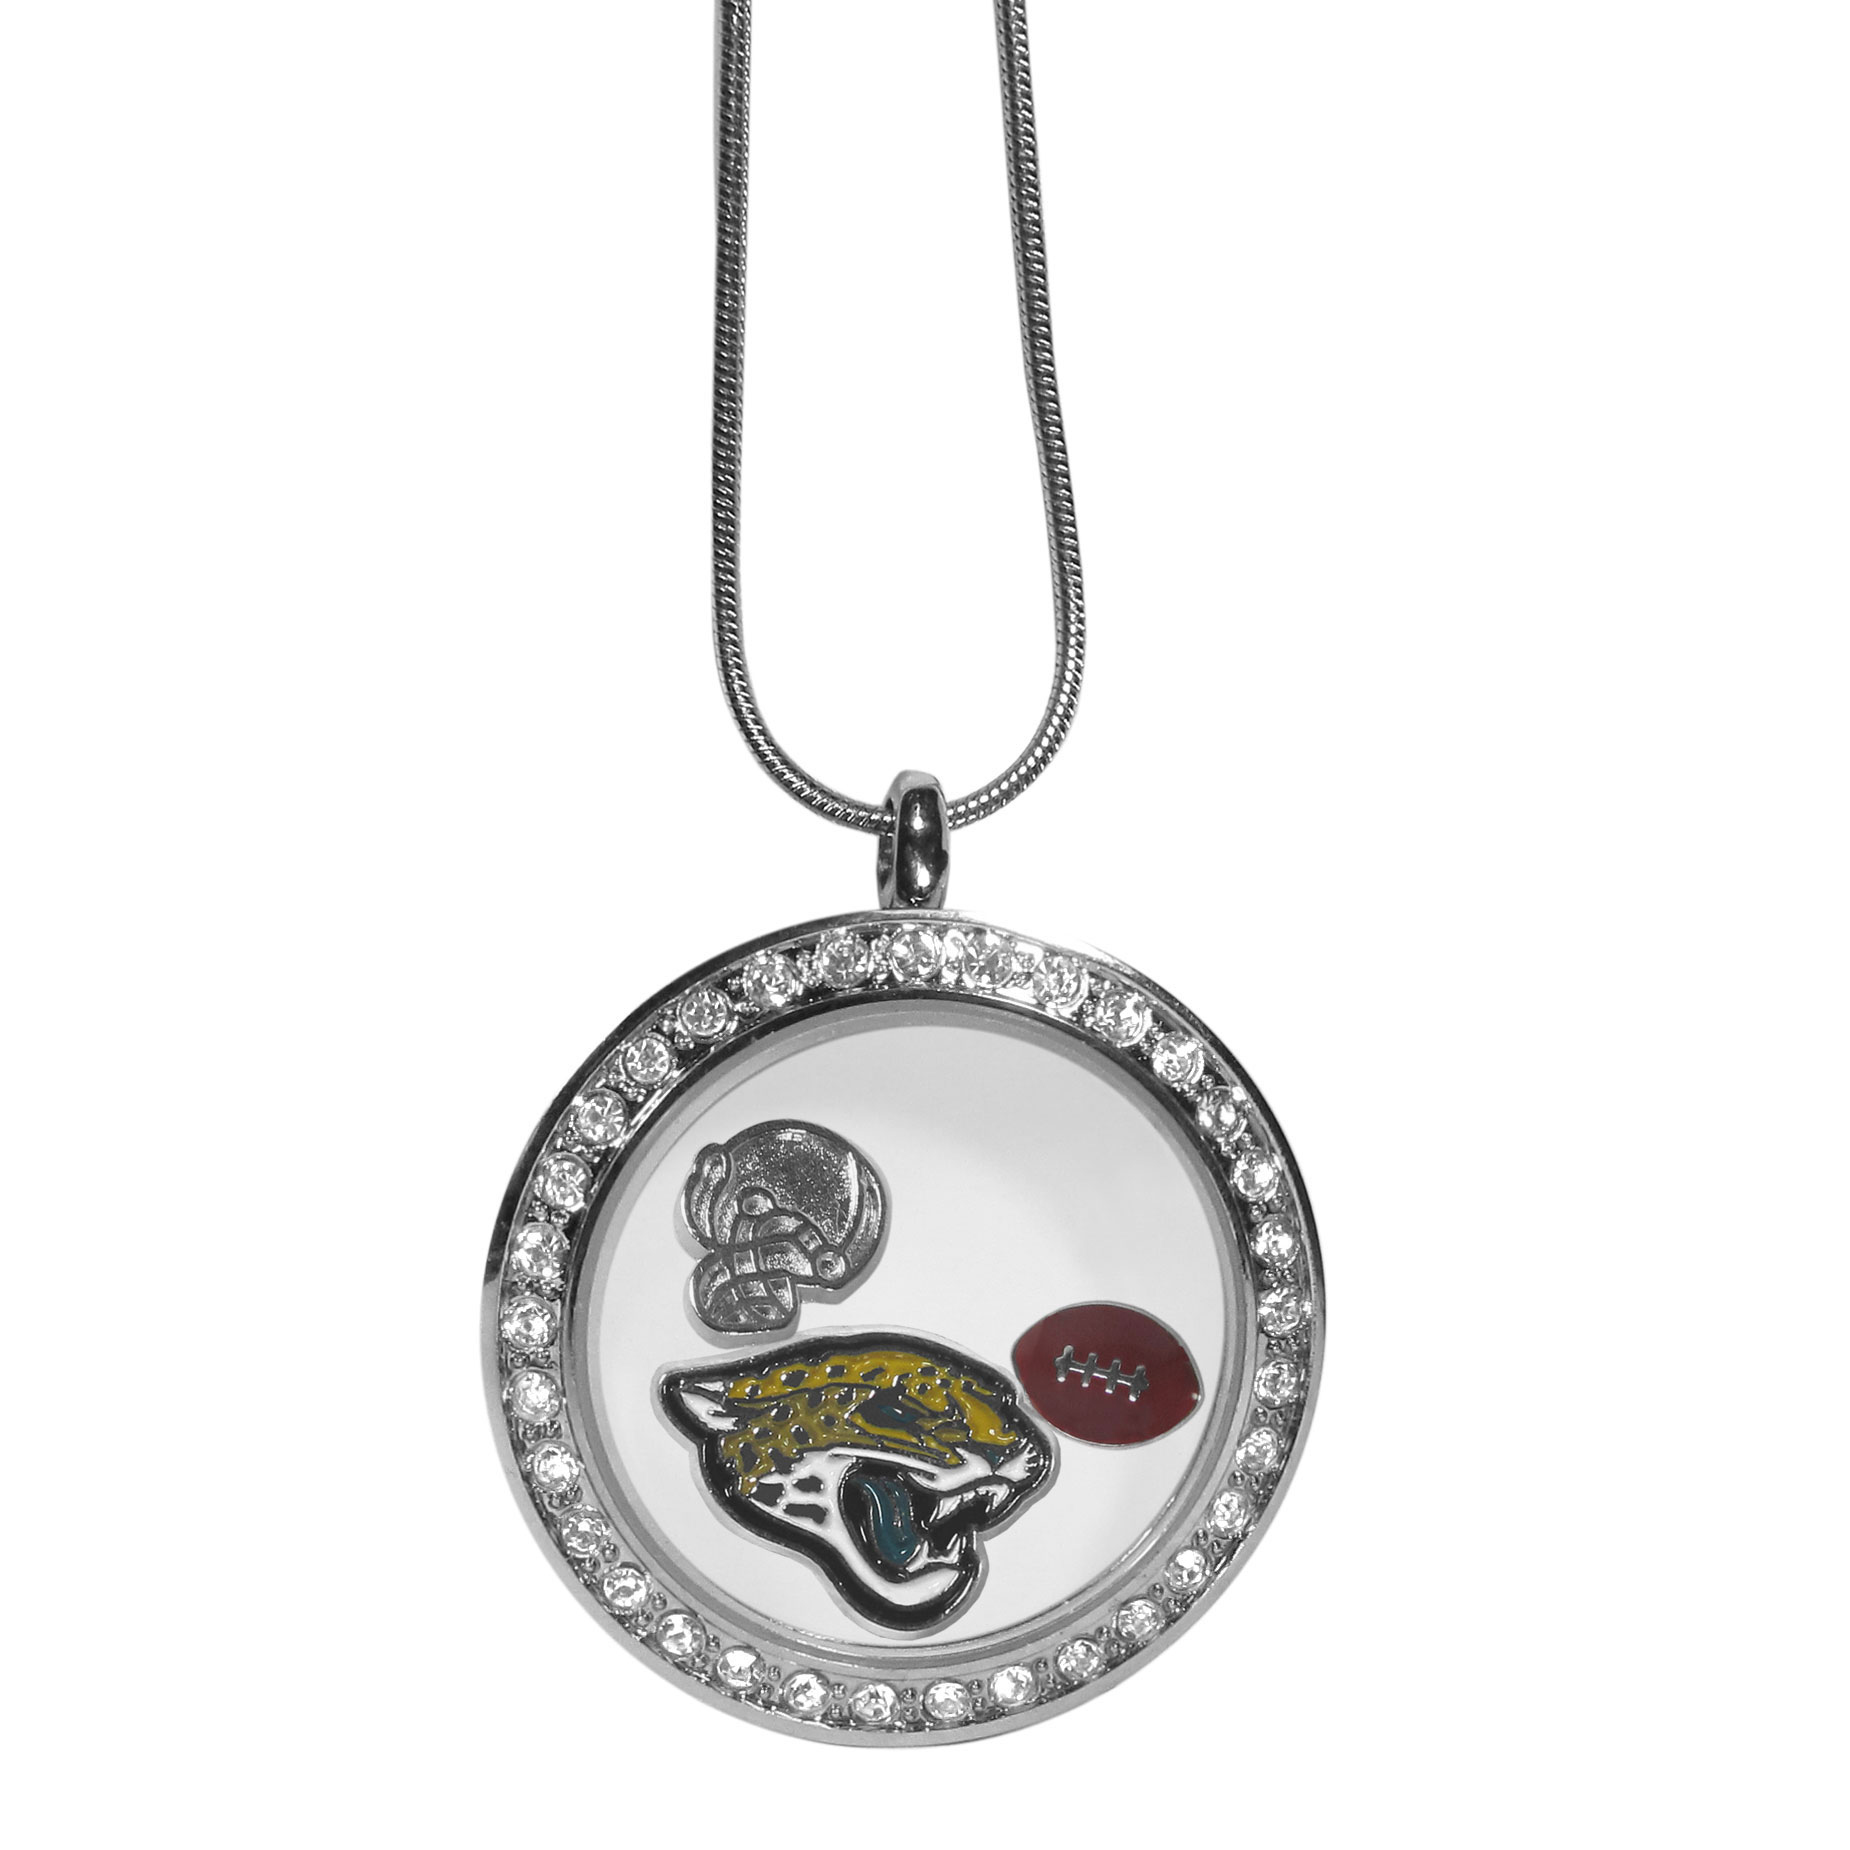 Jacksonville Jaguars Locket Necklace - We have taken the classic floating charm locket and combined with licensed sports charms to create a must have fan necklace. The necklace comes with 3 charms; 1 Jacksonville Jaguars charm, one football charm and one helmet charm. The charms float in a beautiful locket that has a strong magnetic closure with a rhinestone border. The locket comes on an 18 inch snake chain with 2 inch extender.